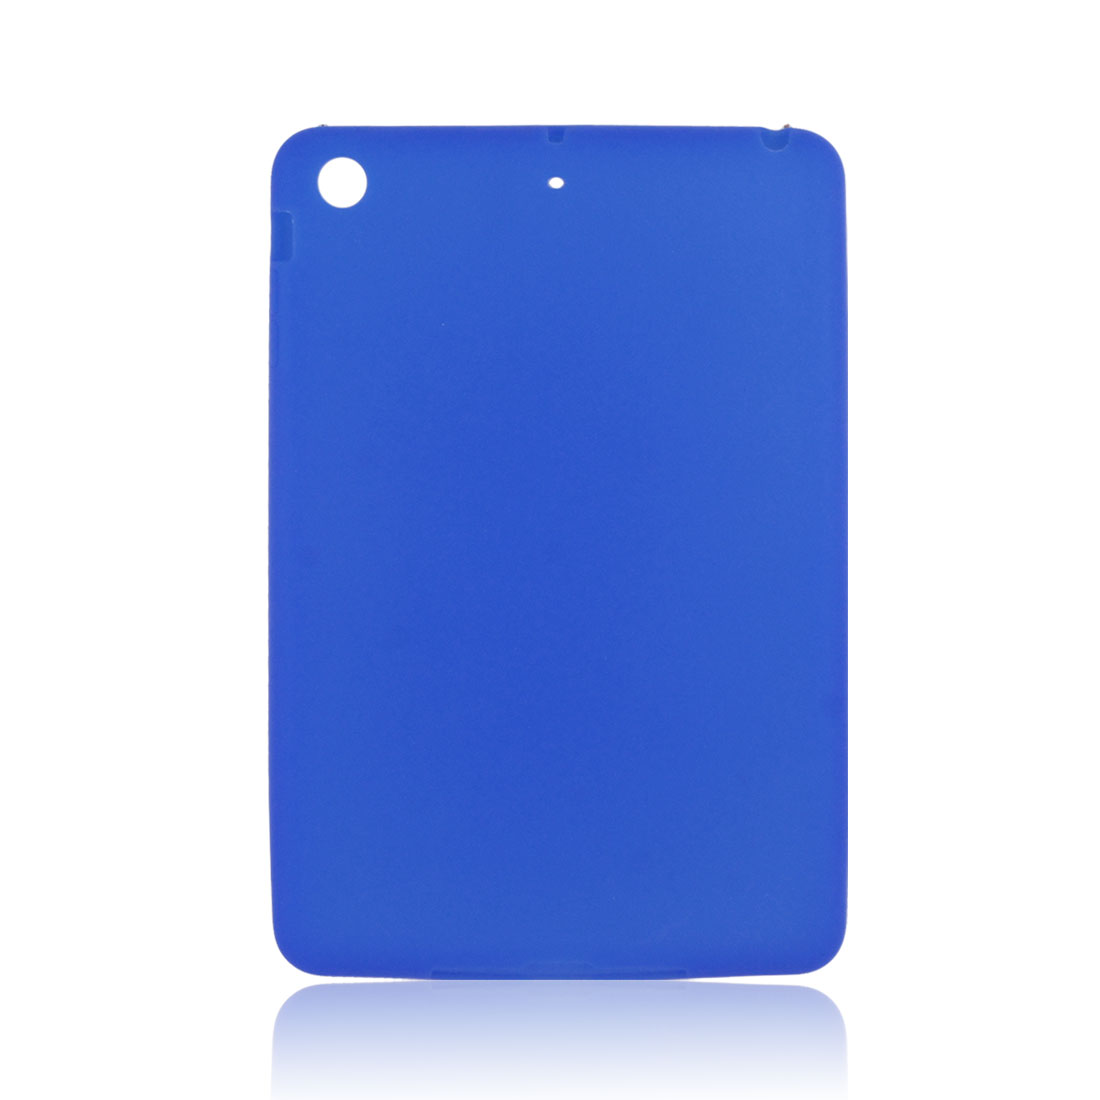 Blue Soft Silicone Skin Case Cover Protector for Apple iPad Mini